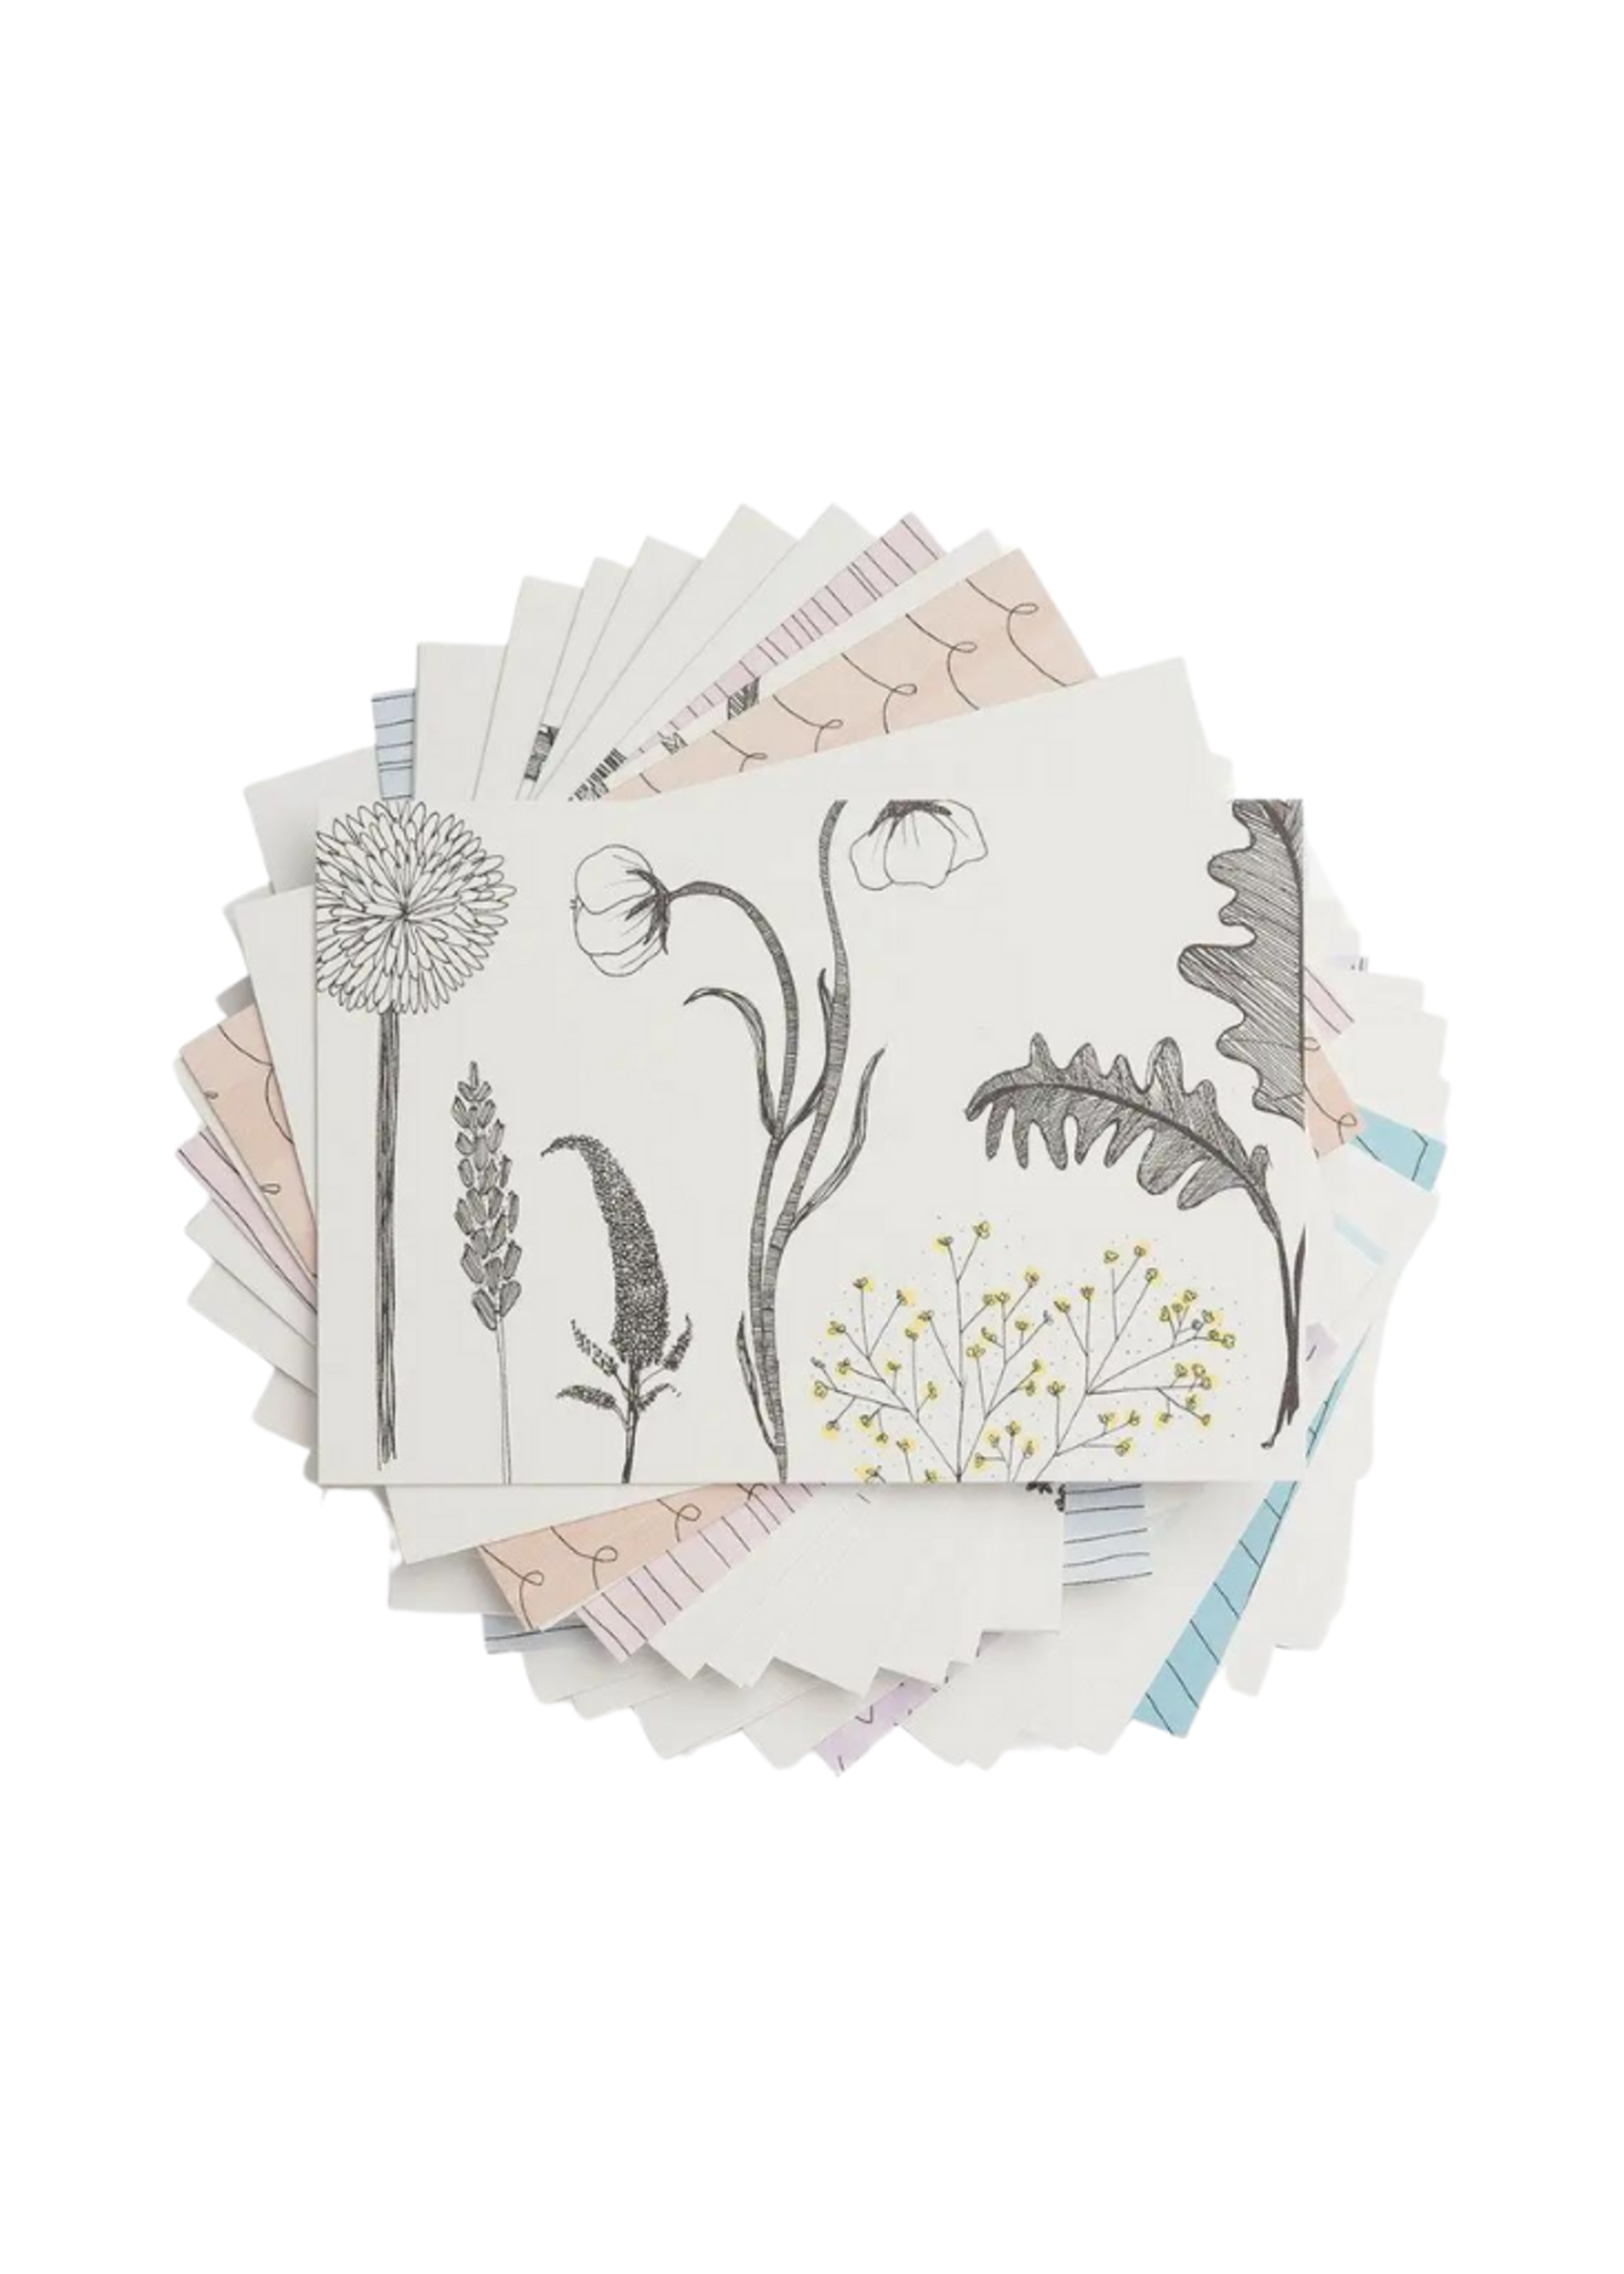 The School of Life Kindness Card Set